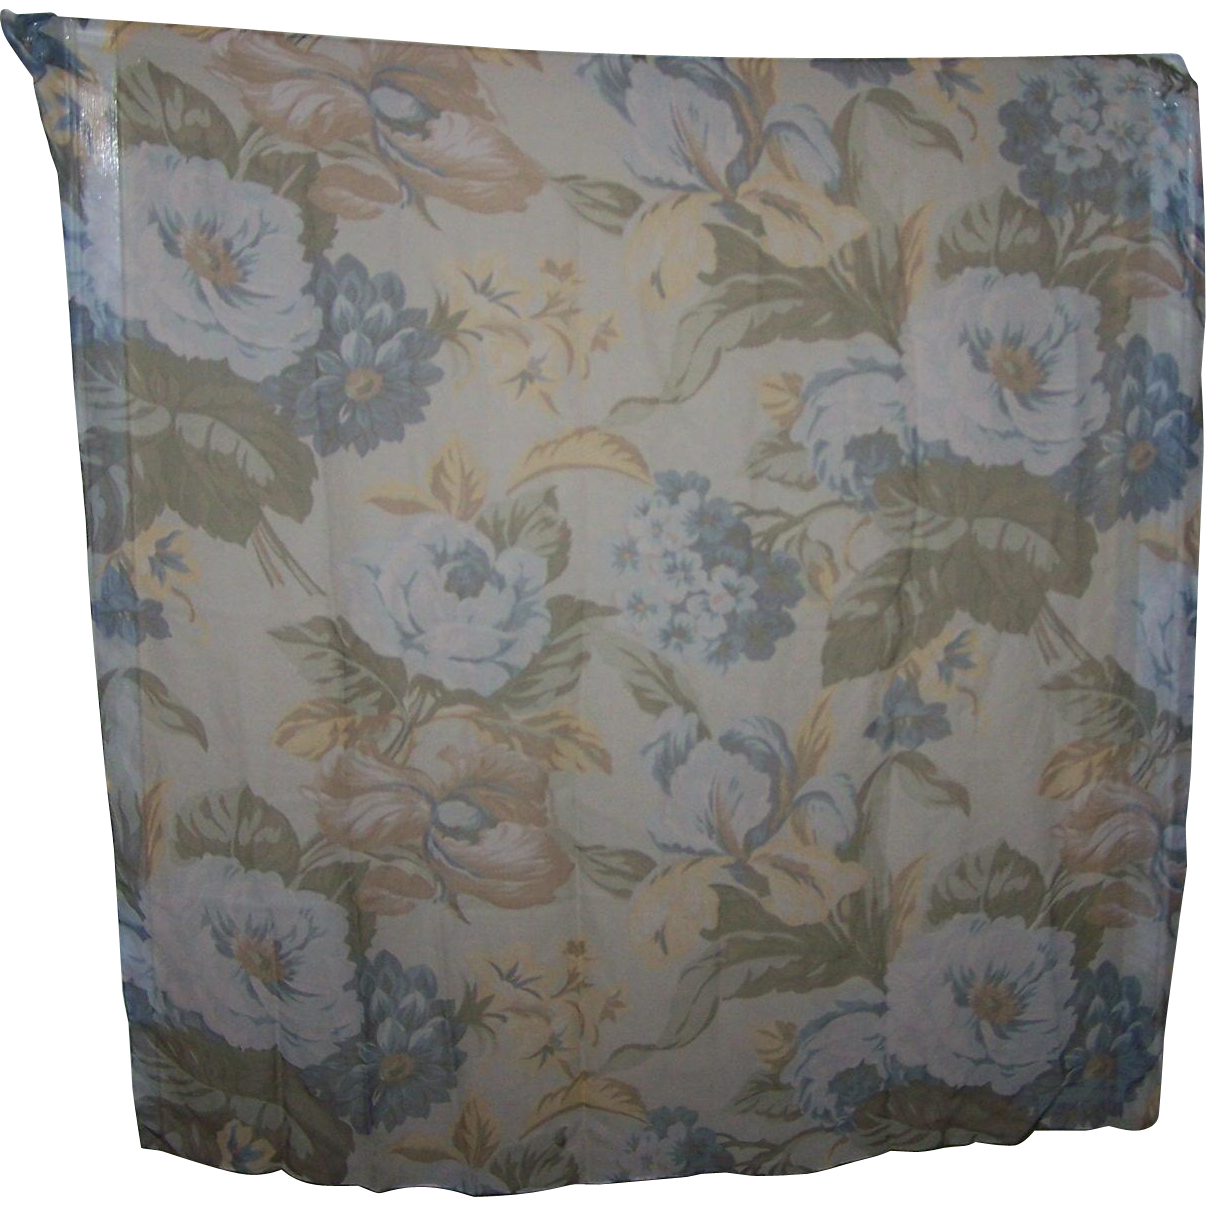 Delicate Sheer Chiffon Silk Designer Signed Anne Taylor Floral Themed Scarf